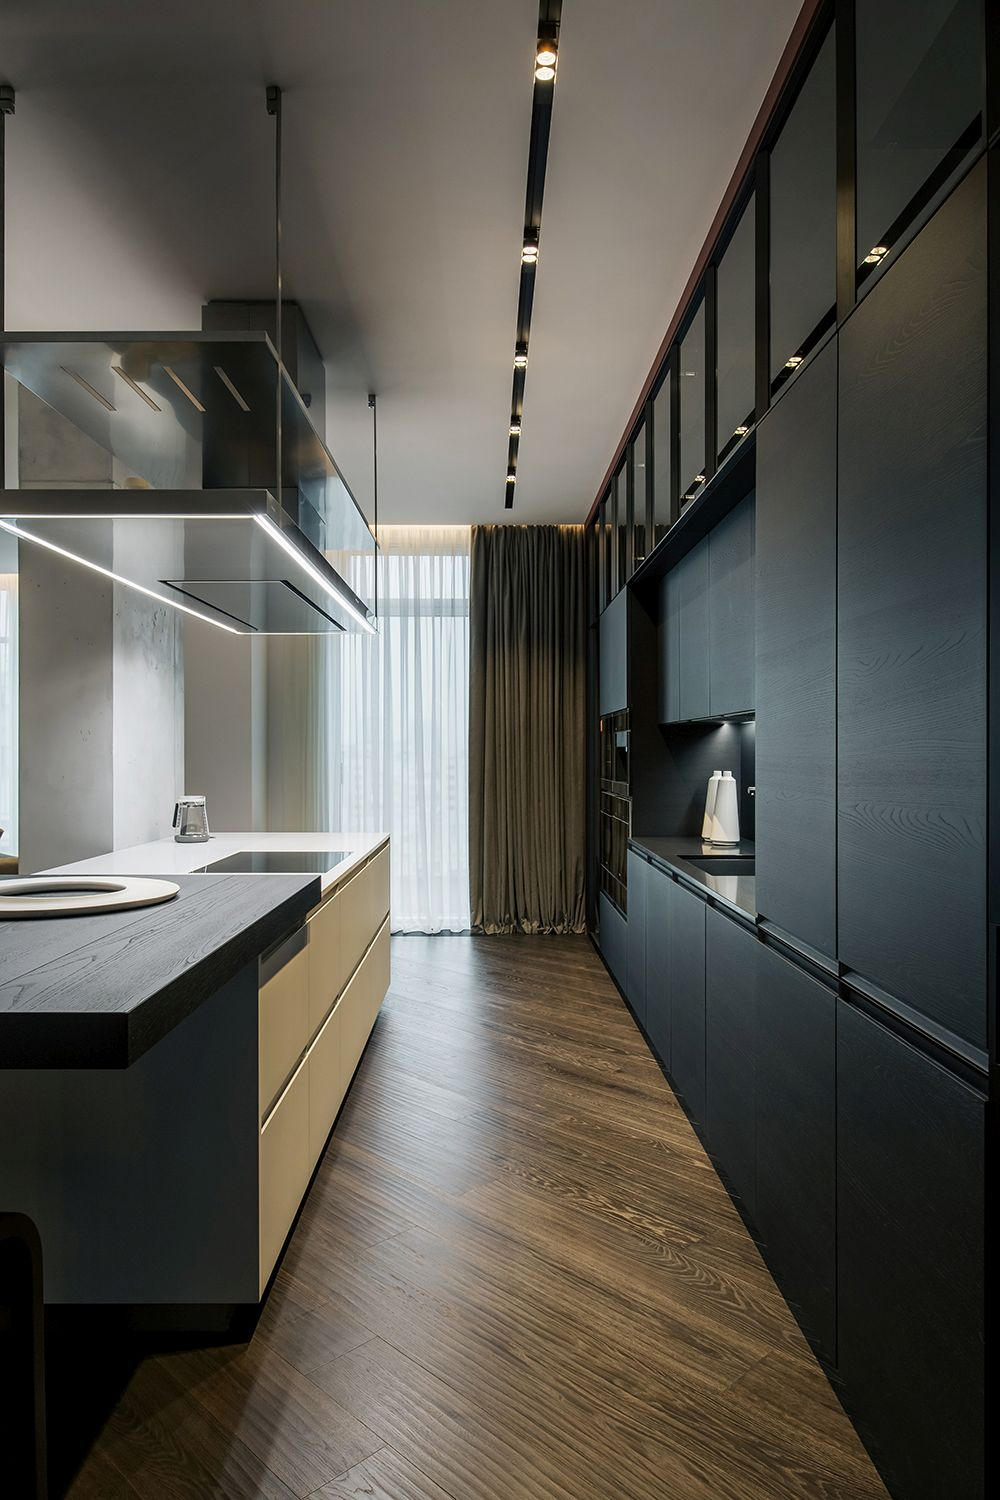 Dark wooden floors throughout the apartment ensure a seamless visual connection between the spaces